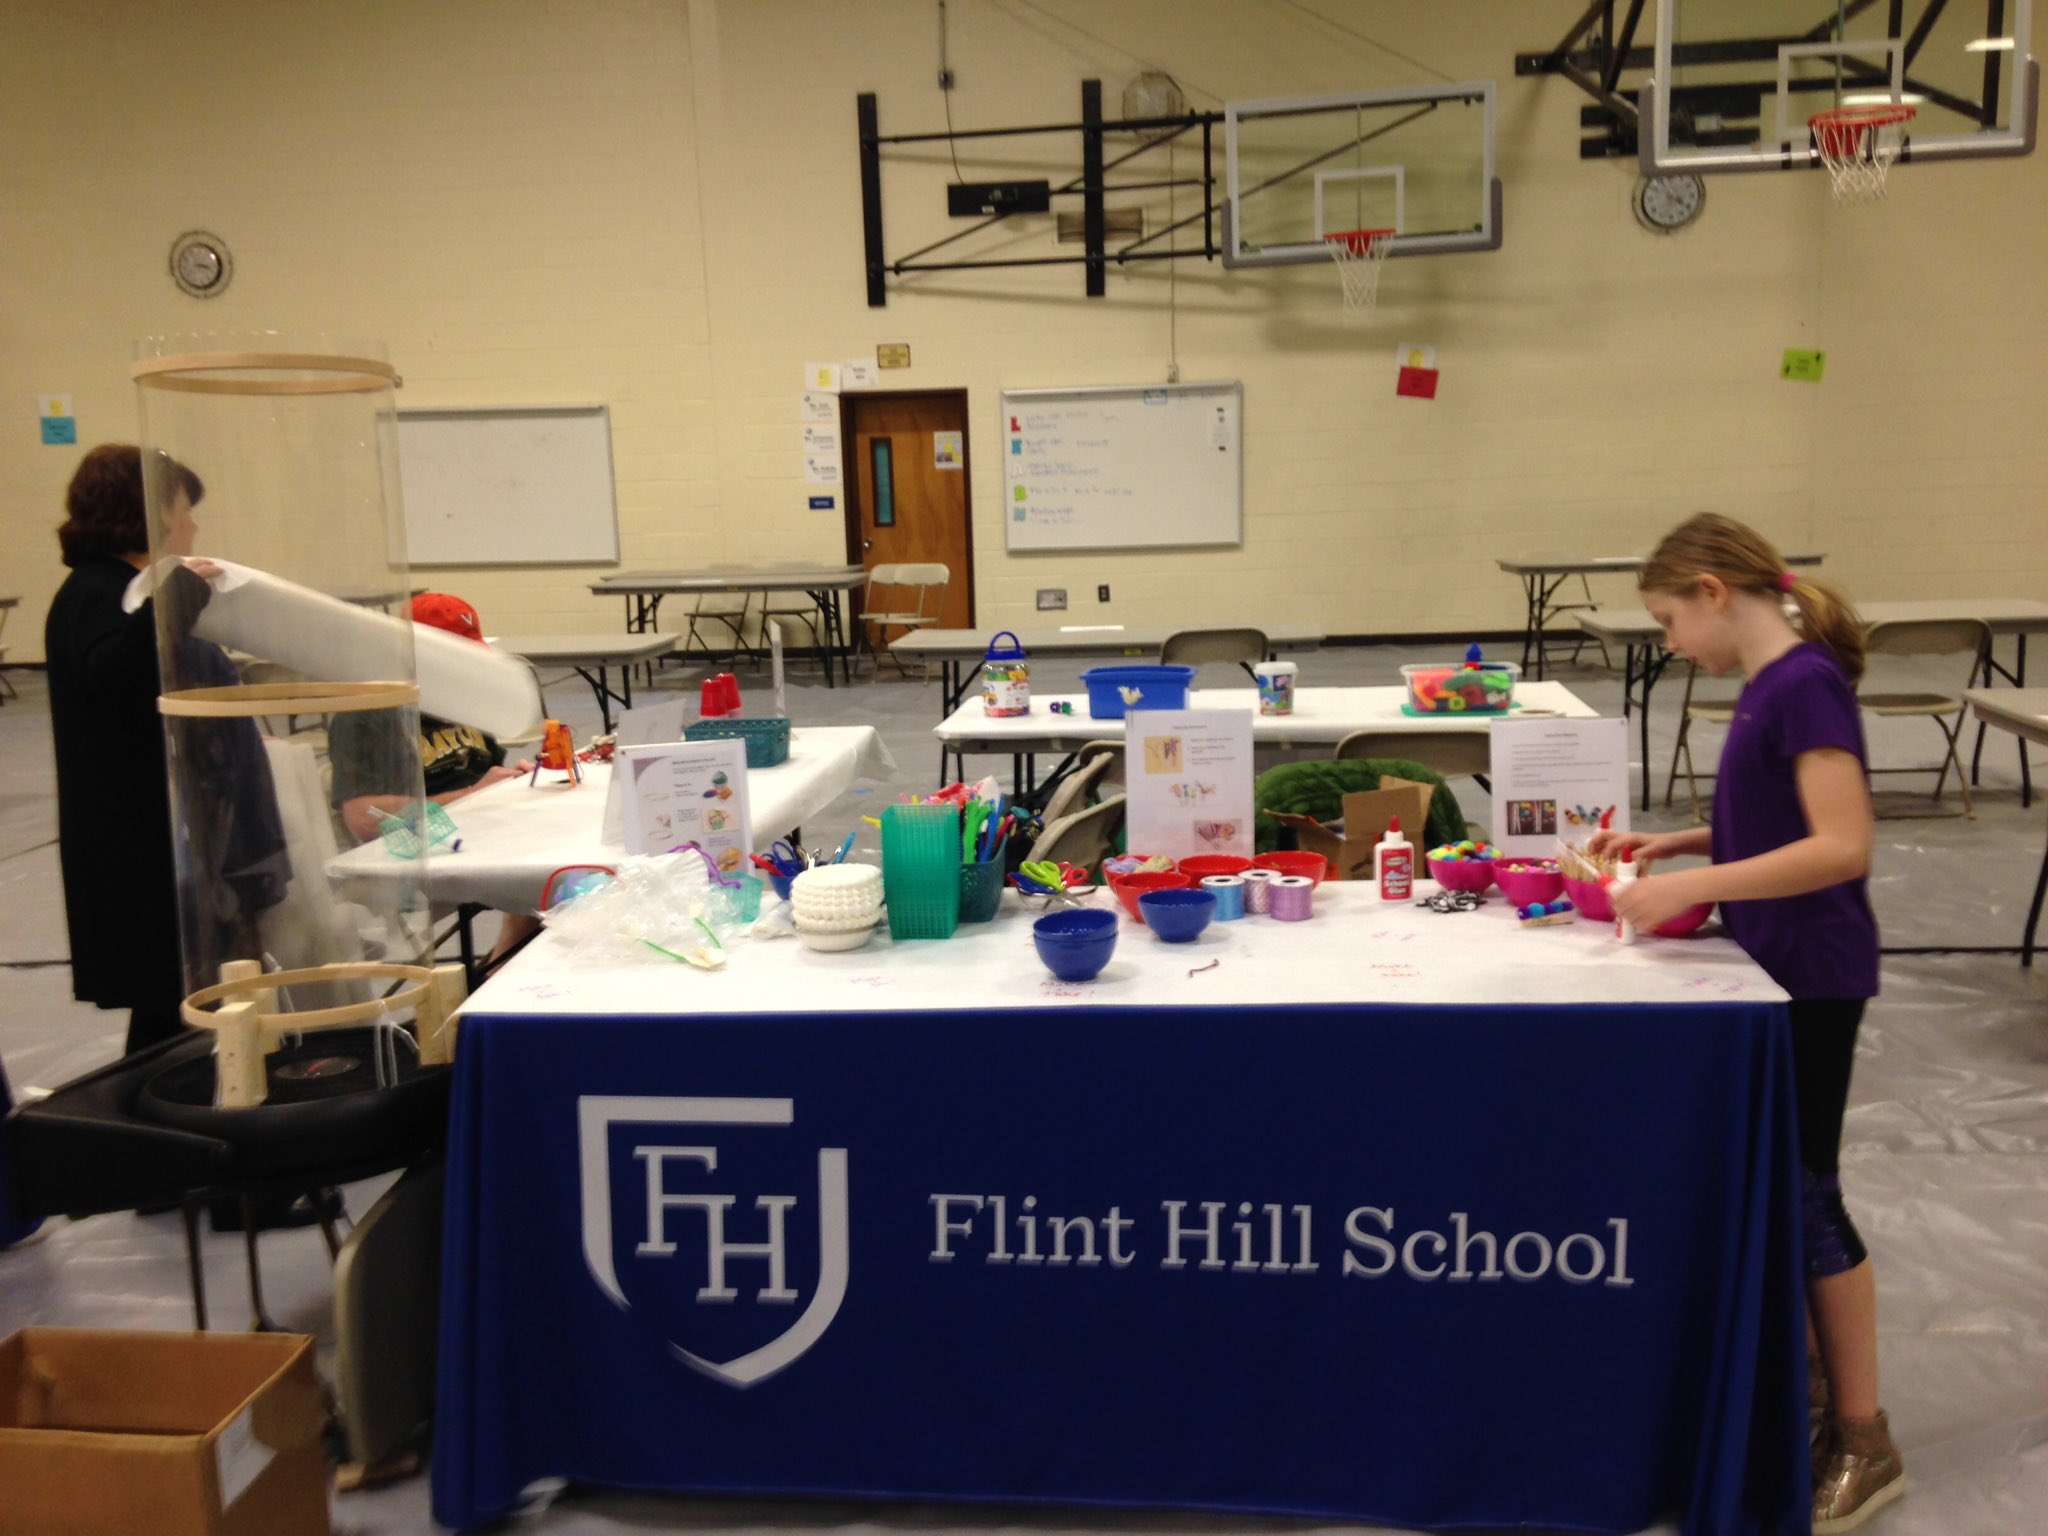 We are ready for you Northern Virginia! Come see us in the gym at Hughes Middle #myflinthill @makerfairenova @peacefulpendant https://t.co/IDzARwjSl0